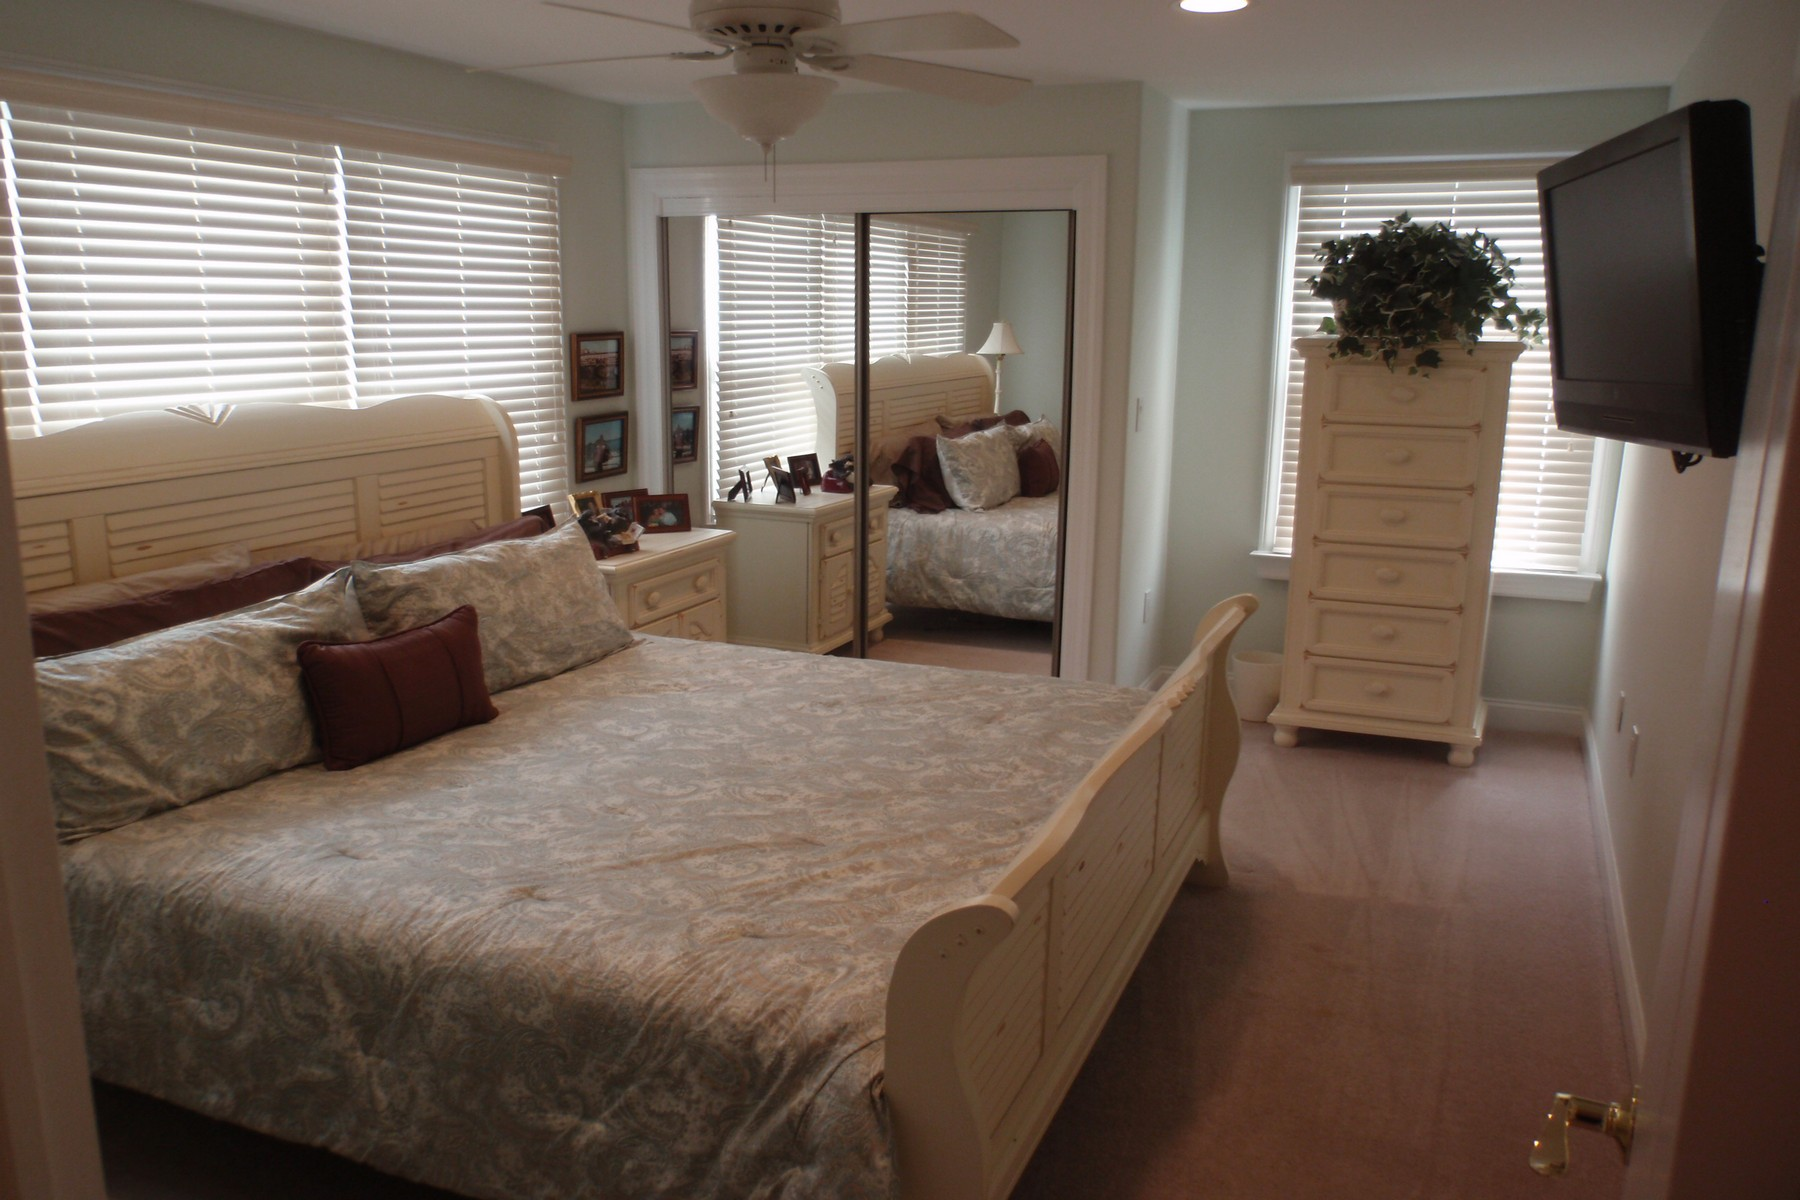 Additional photo for property listing at 9200 Monmouth Avenue, Unit A 9200 Monmouth Avenue Unit A Margate, New Jersey 08402 United States